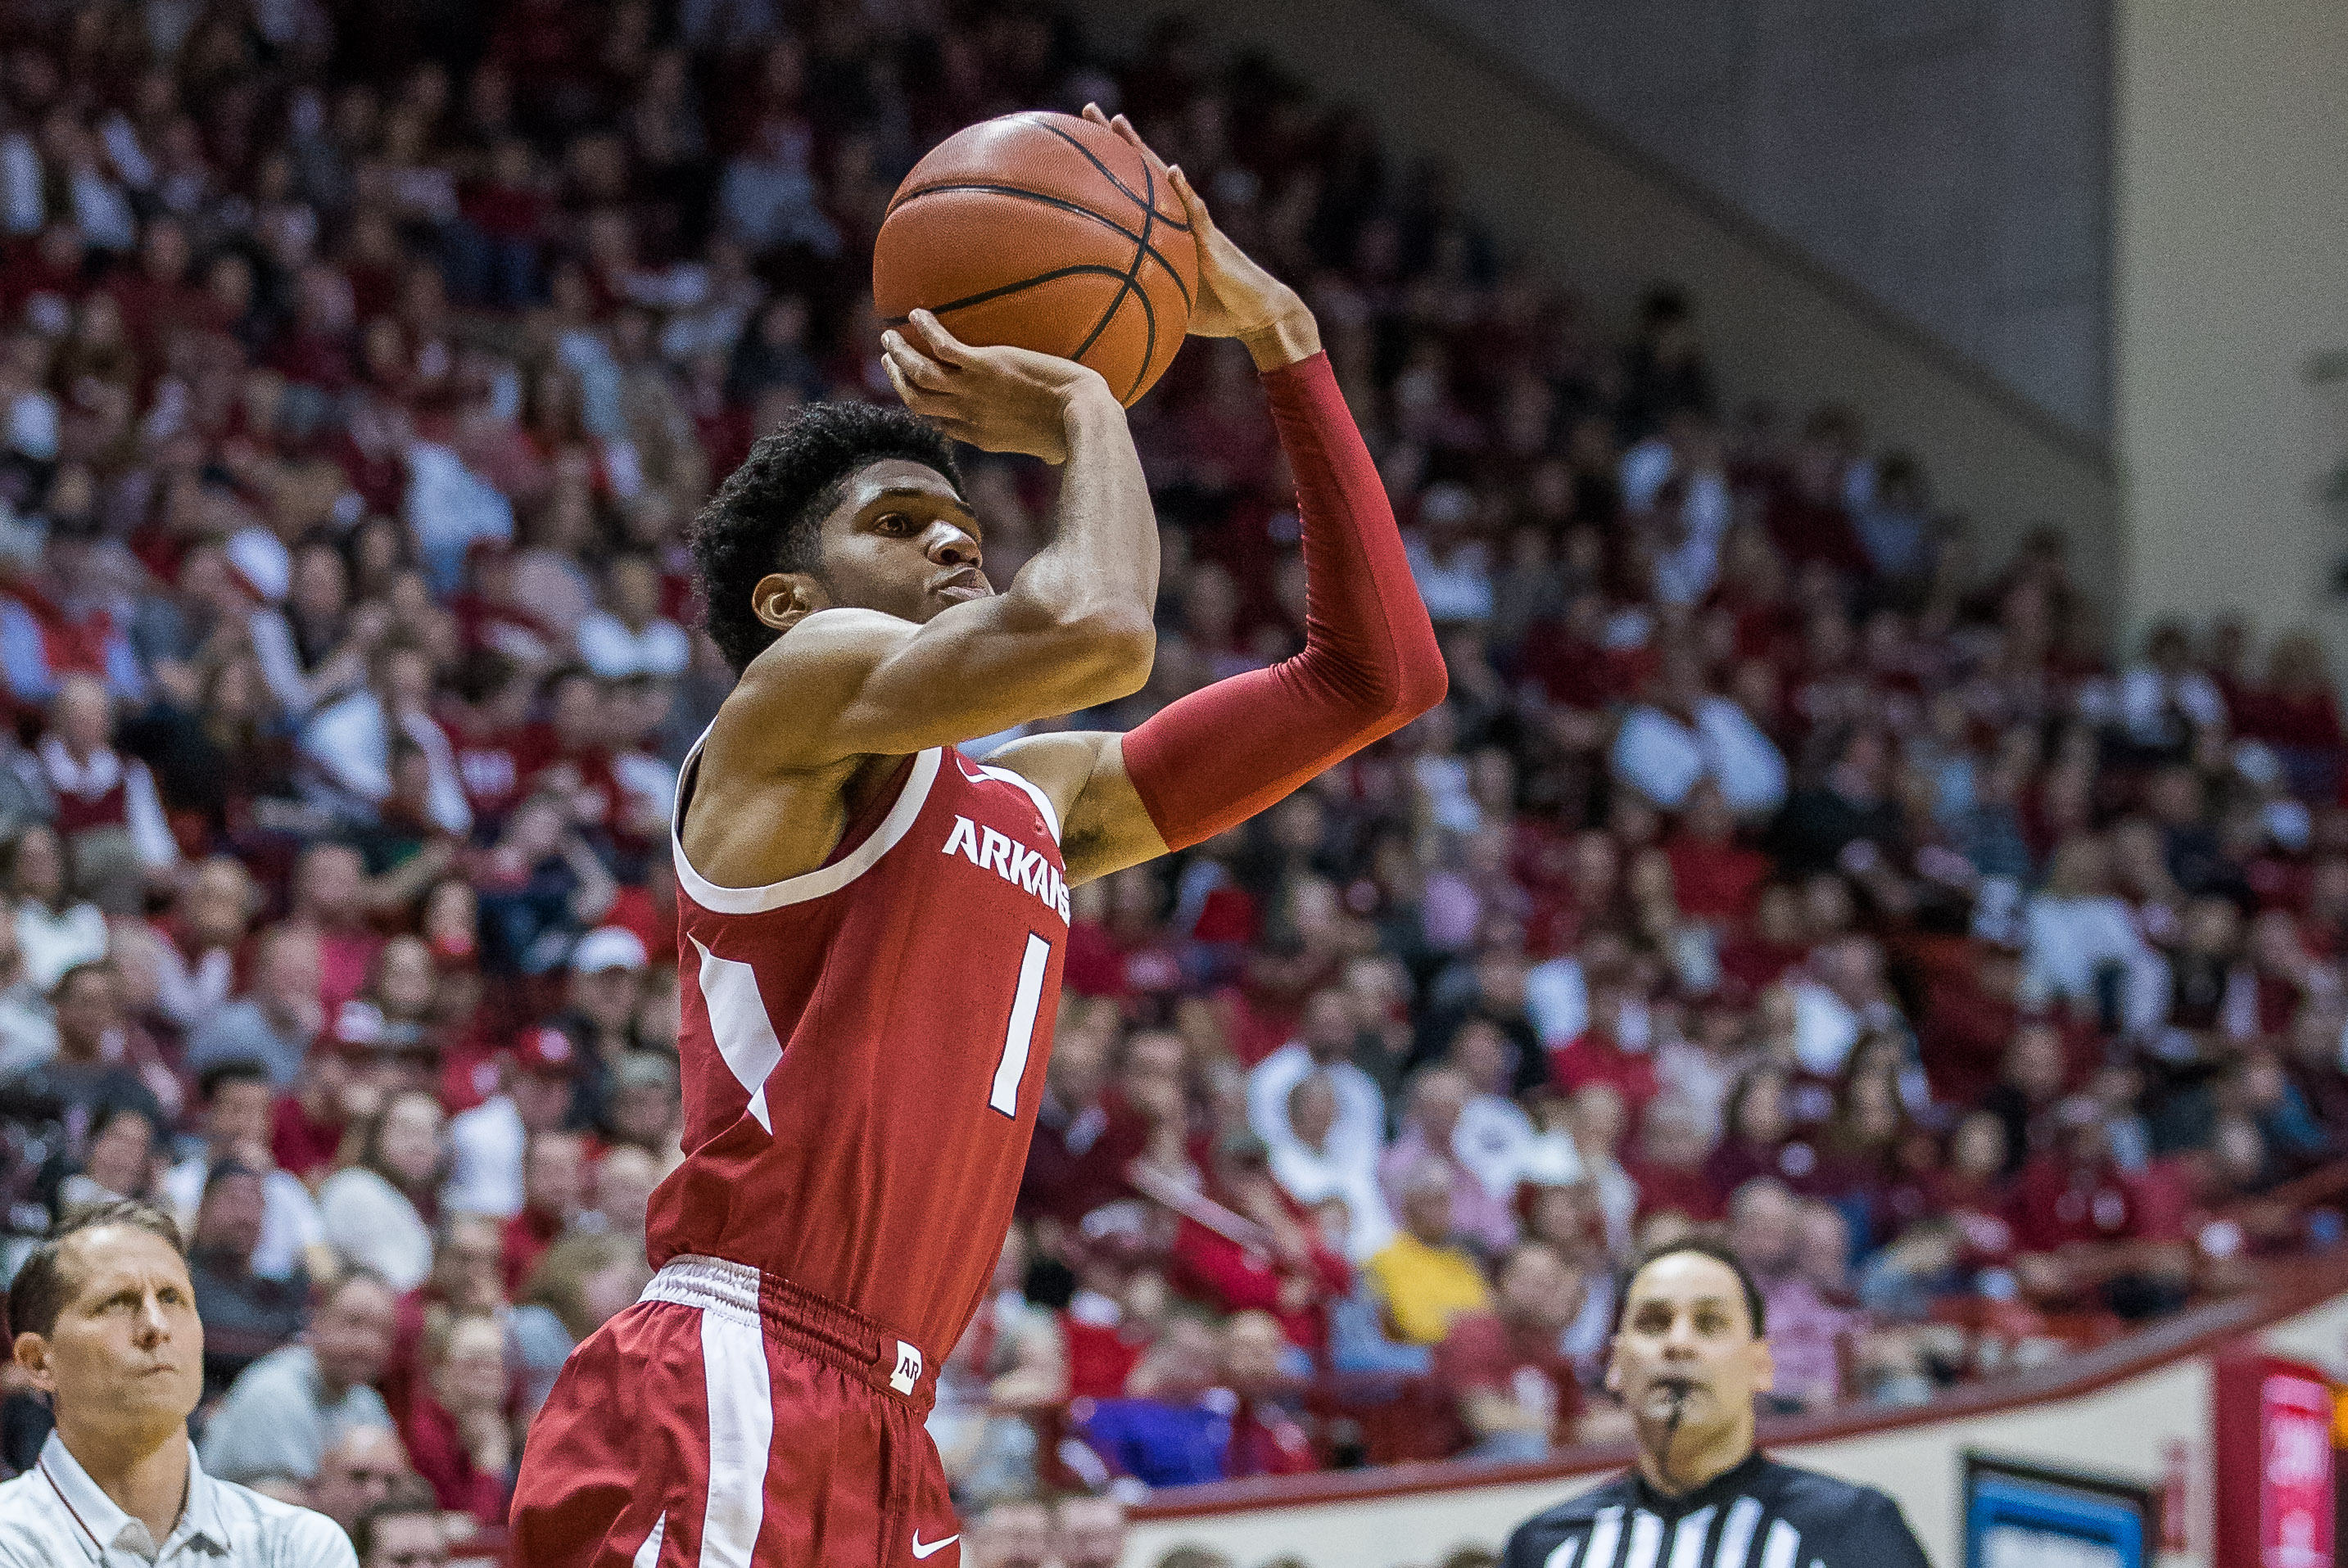 Dec 29, 2019; Bloomington, Indiana, USA; Arkansas Razorbacks guard Isaiah Joe (1) shoots the ball in the second half against the Indiana Hoosiers at Simon Skjodt Assembly Hall. Mandatory Credit: